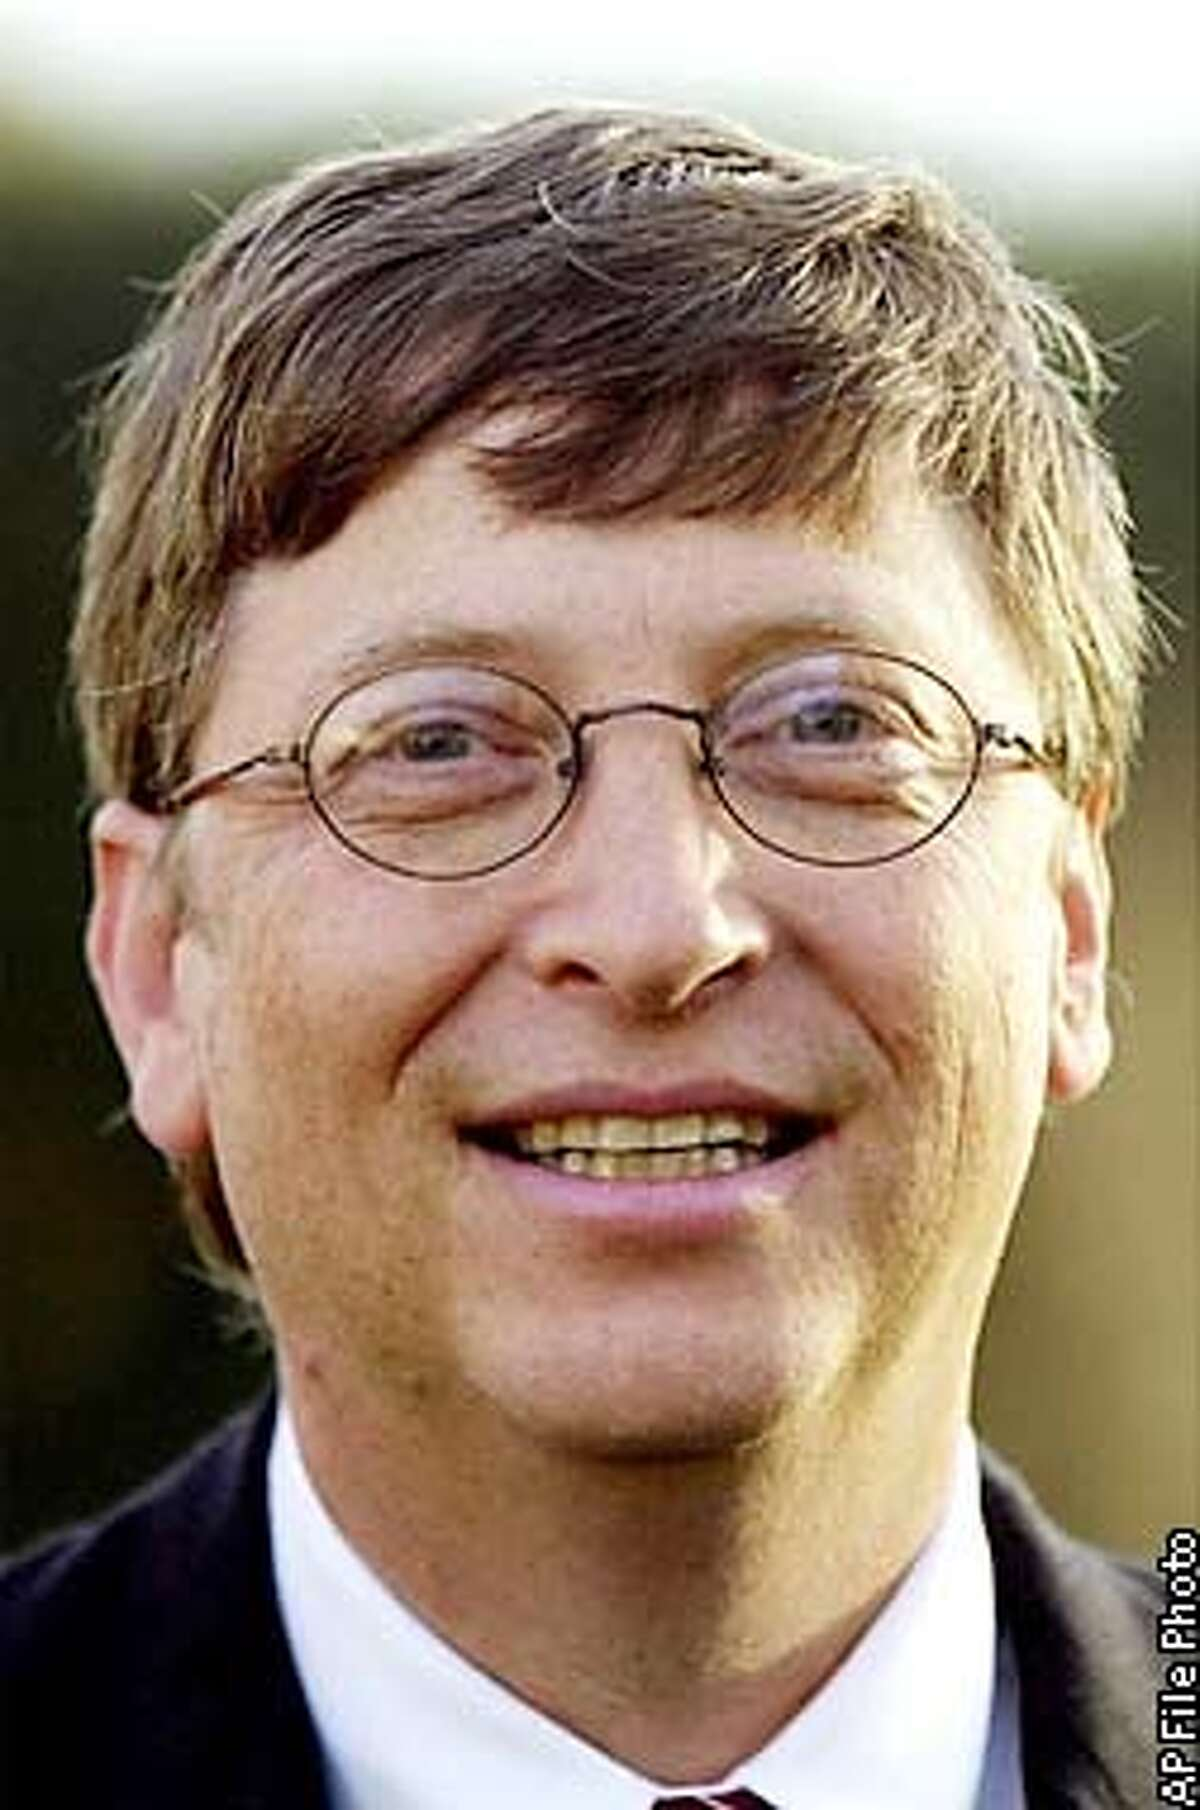 Bill Gates, 47, Microsofts chief executive officer. A federal judge approved most of the provisions of an antitrust settlement between Microsoft Corp. and the Justice Department, largely setting aside concerns by some states that the sanctions were too light on the software giant Friday, Nov. 1, 2002 in Washington. (AP Photo/File)